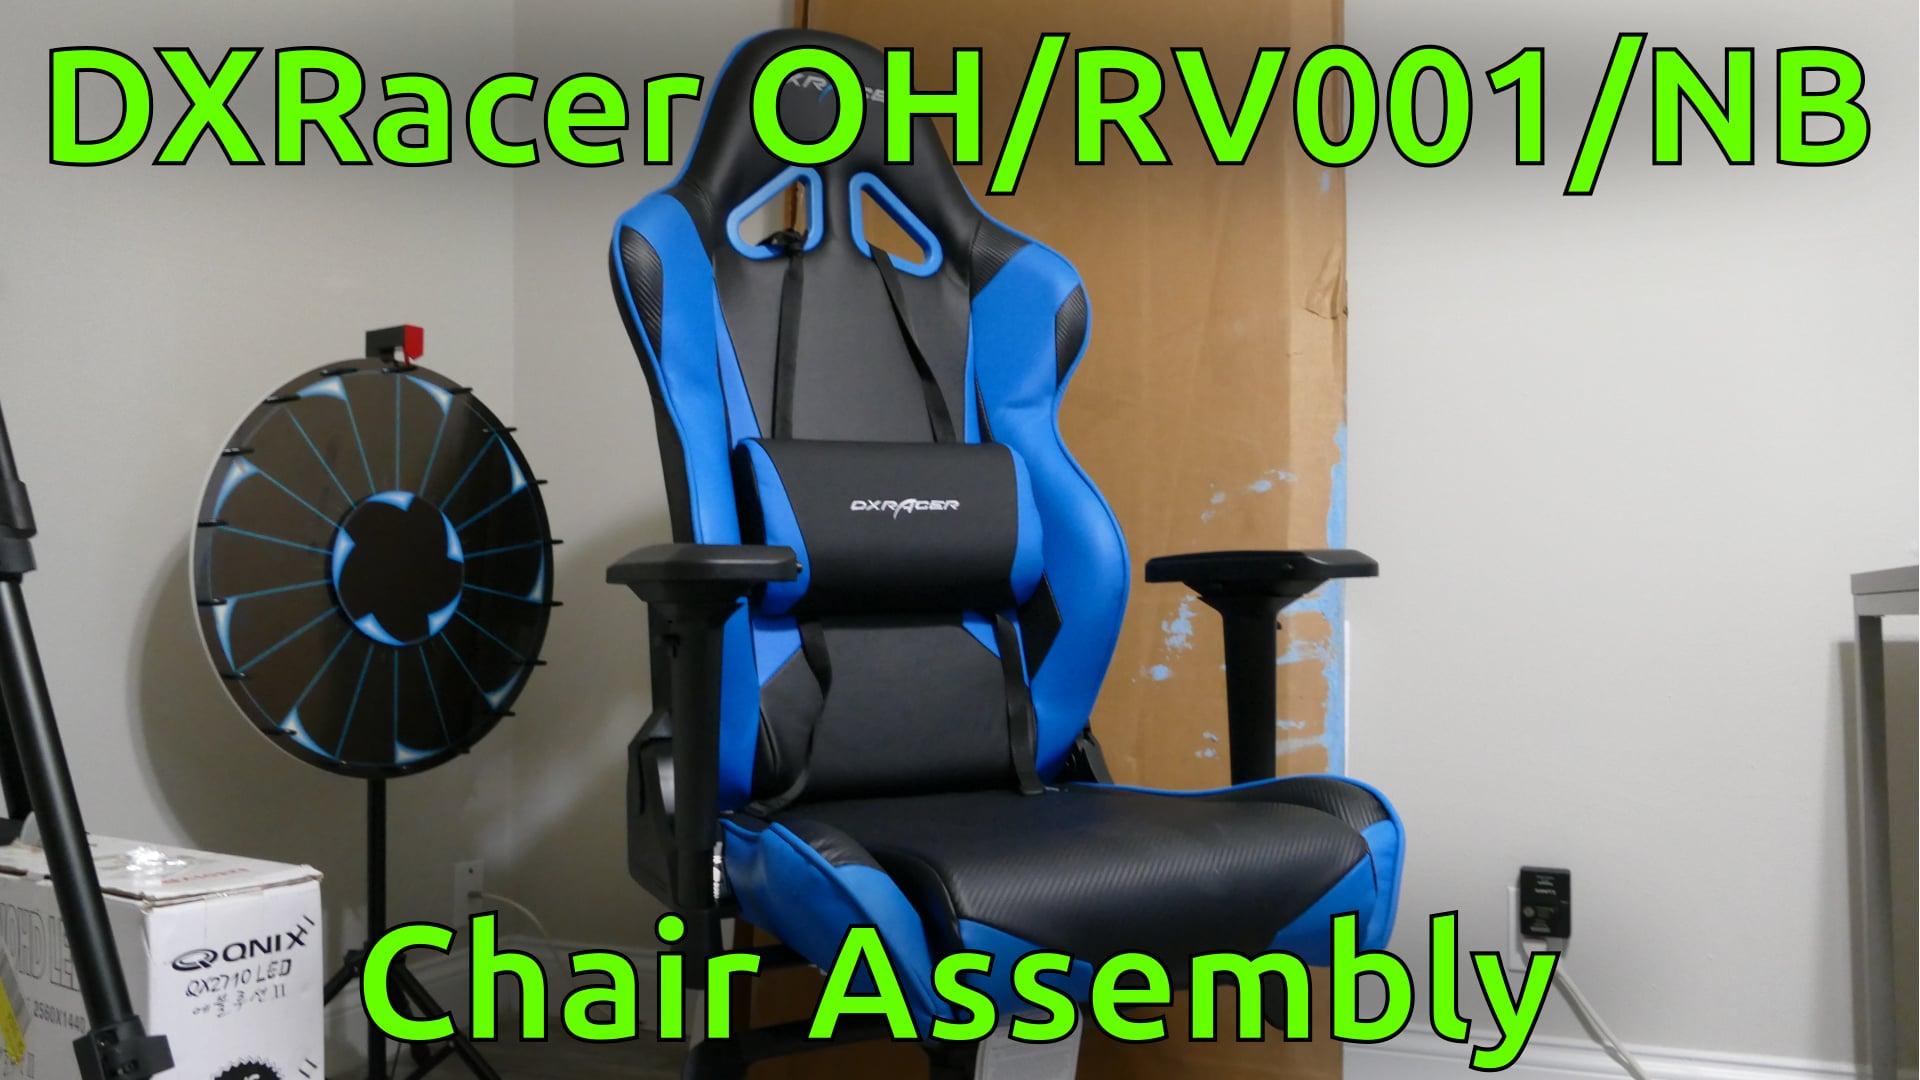 DXRacer OH/RV001/NB Chair Assembly